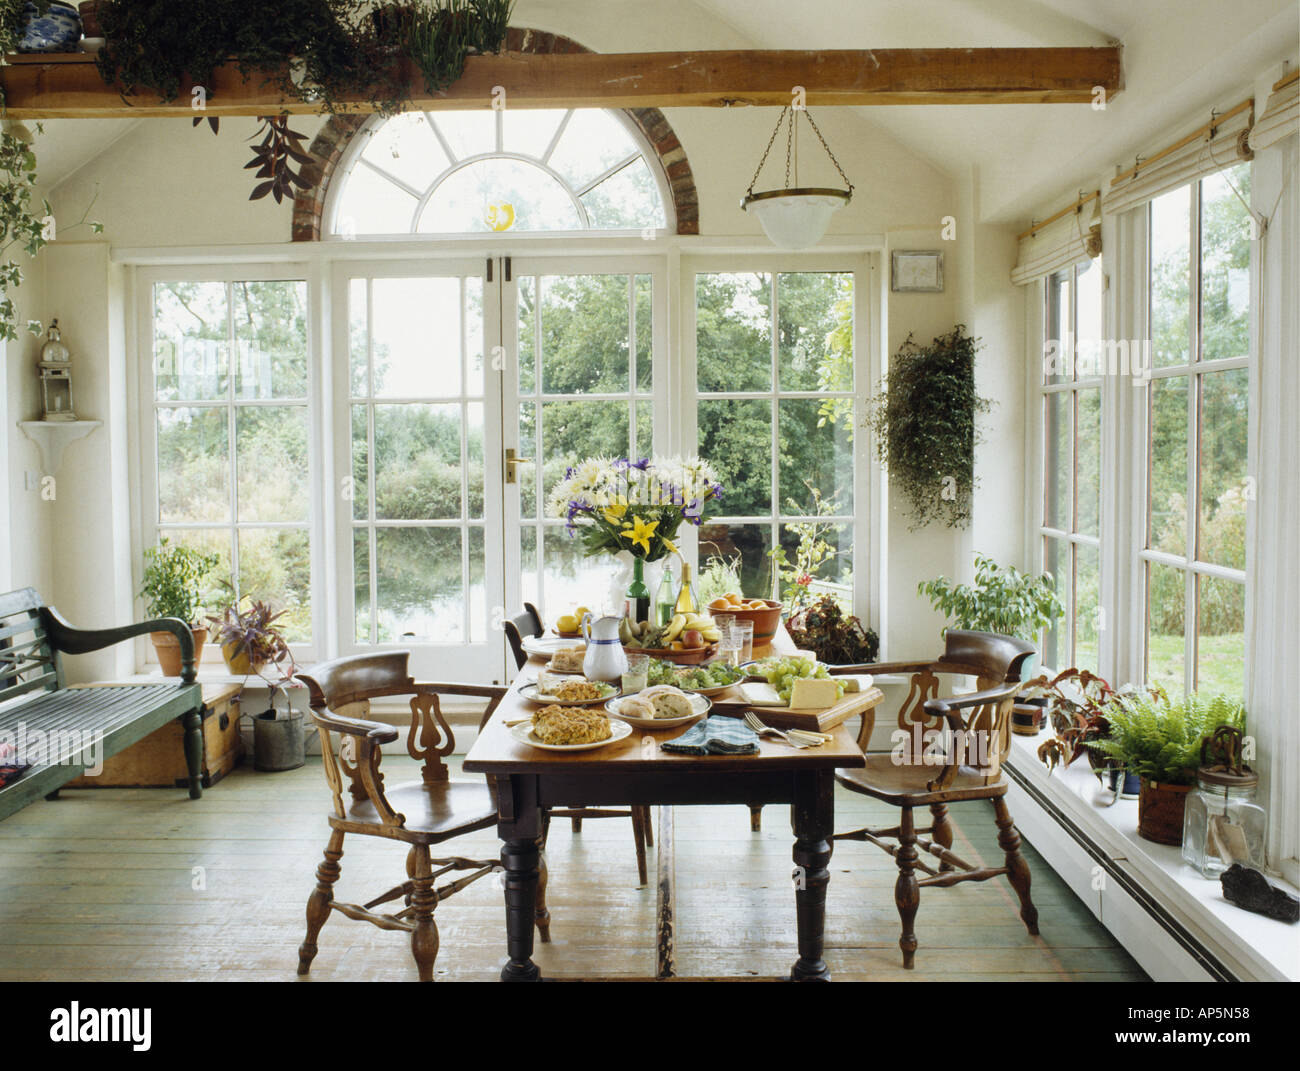 Large Dining Room With Windows Stock Photo Alamy